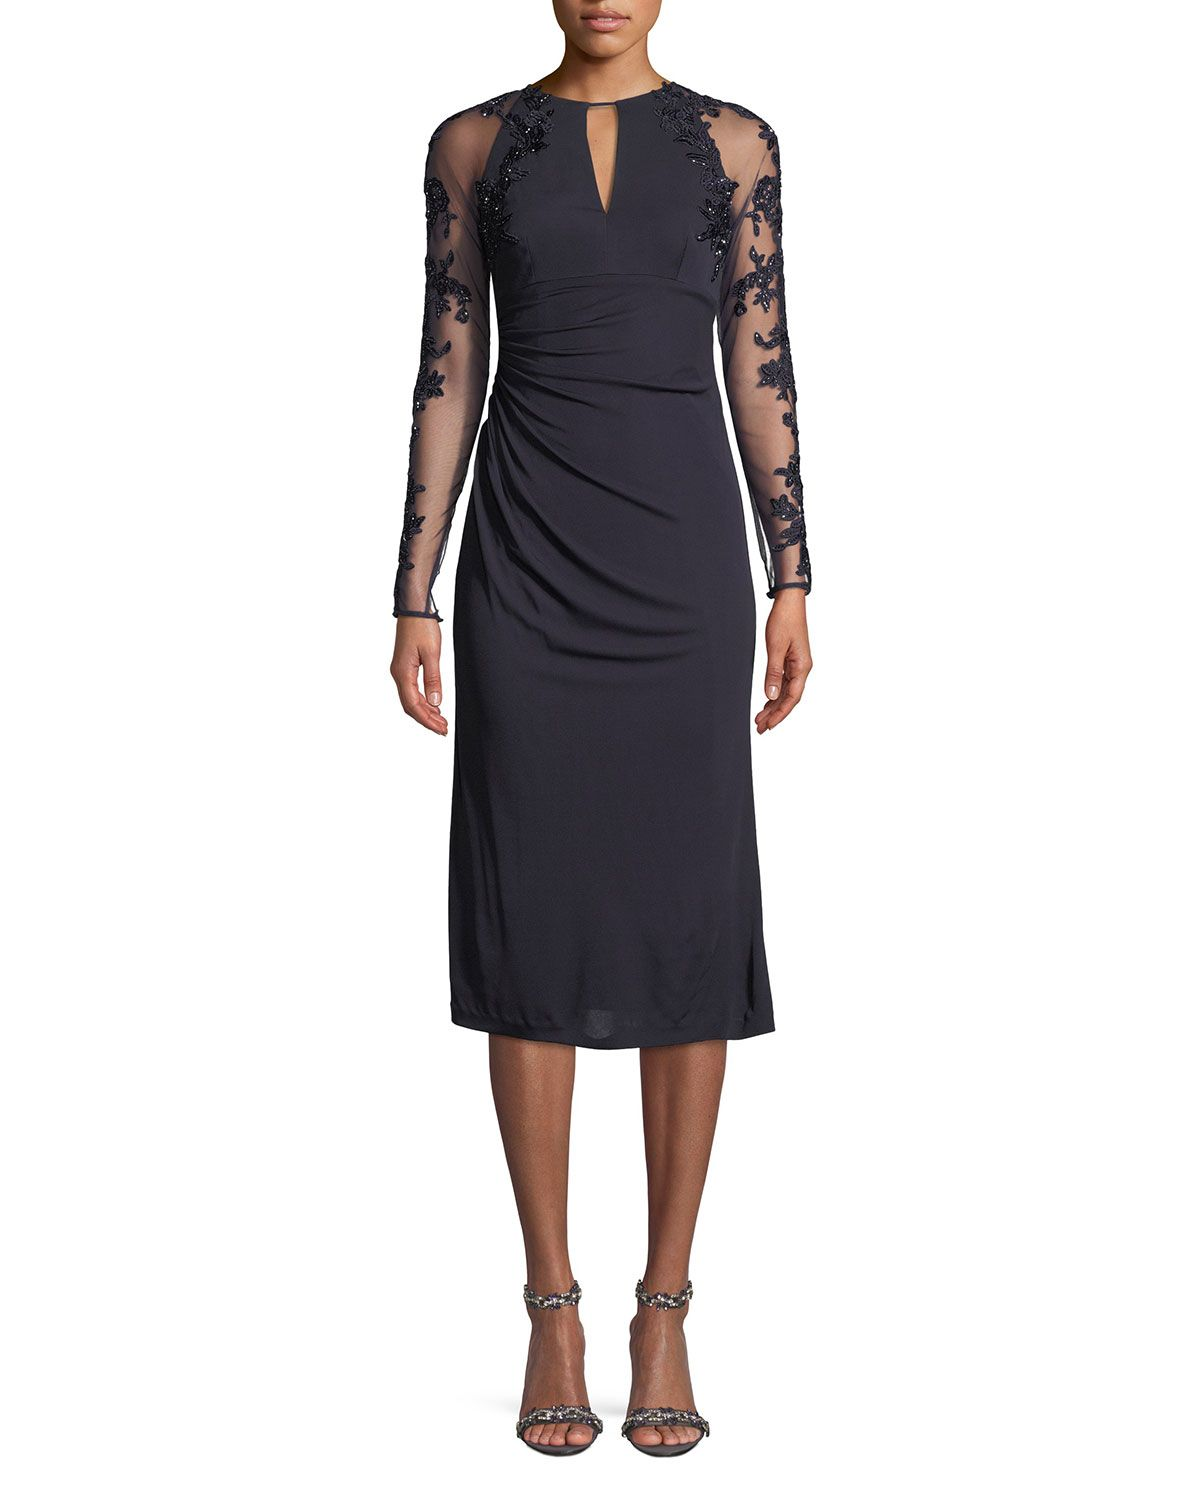 6e3348c0 Stretch Jersey Beaded-Sleeve Cocktail Dress. Stretch Jersey Beaded-Sleeve  Cocktail Dress David Meister ...